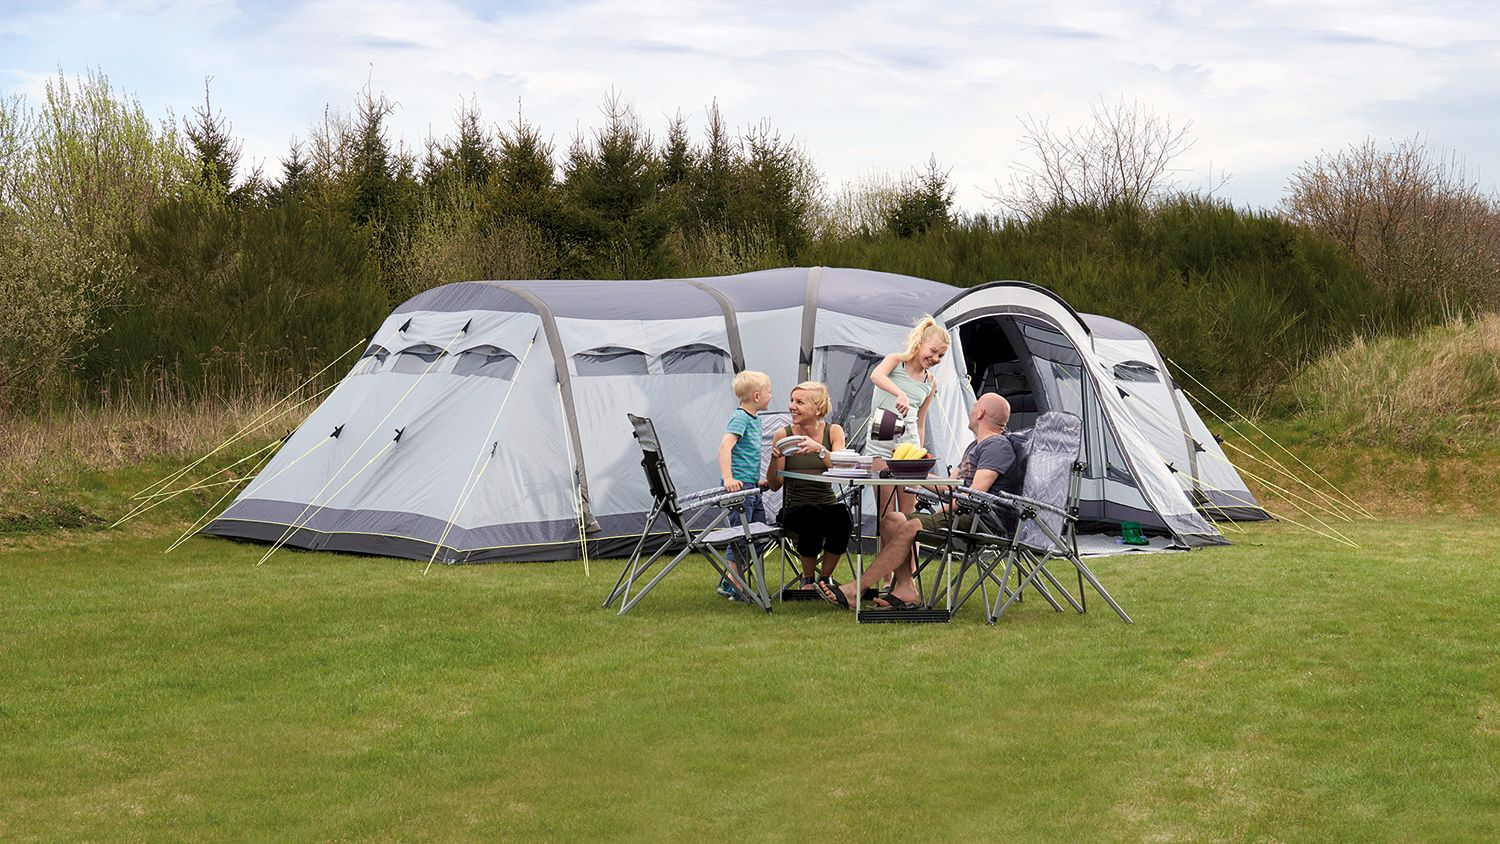 The best c&ing tents you can stand up in & The Best Camping Tents You Can Stand Up In - Outdoorscart